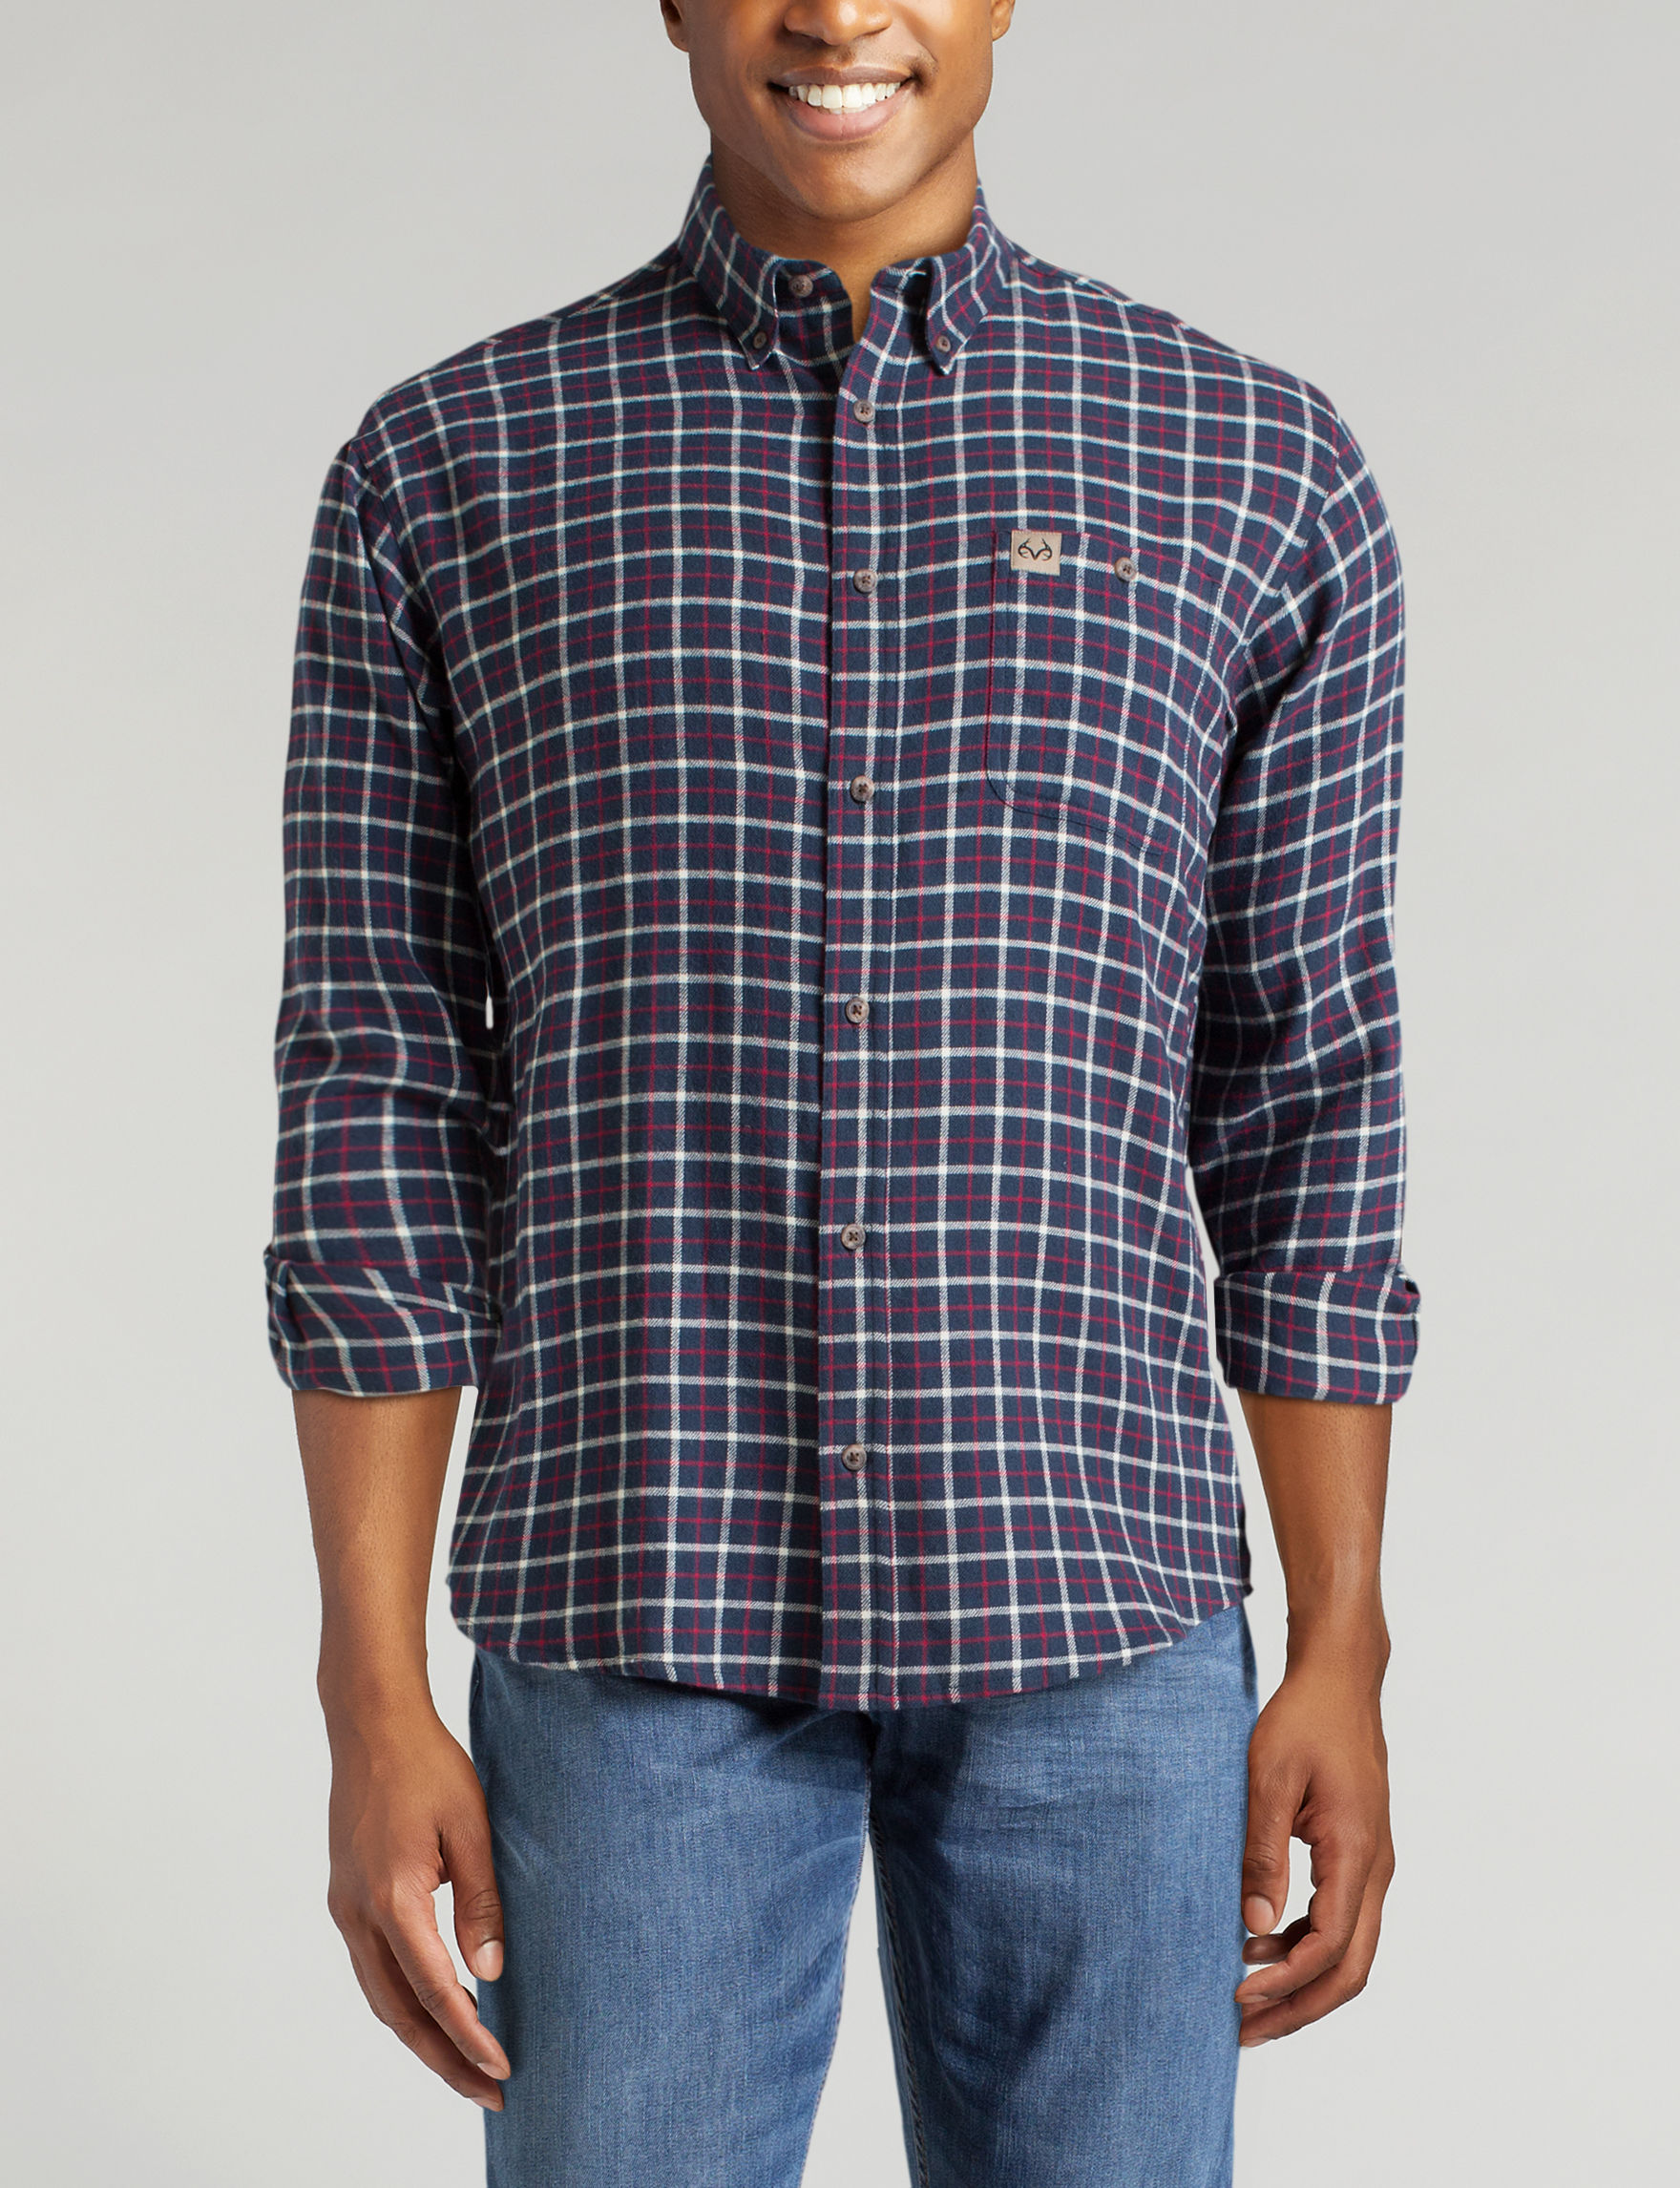 Realtree Navy Plaid Casual Button Down Shirts